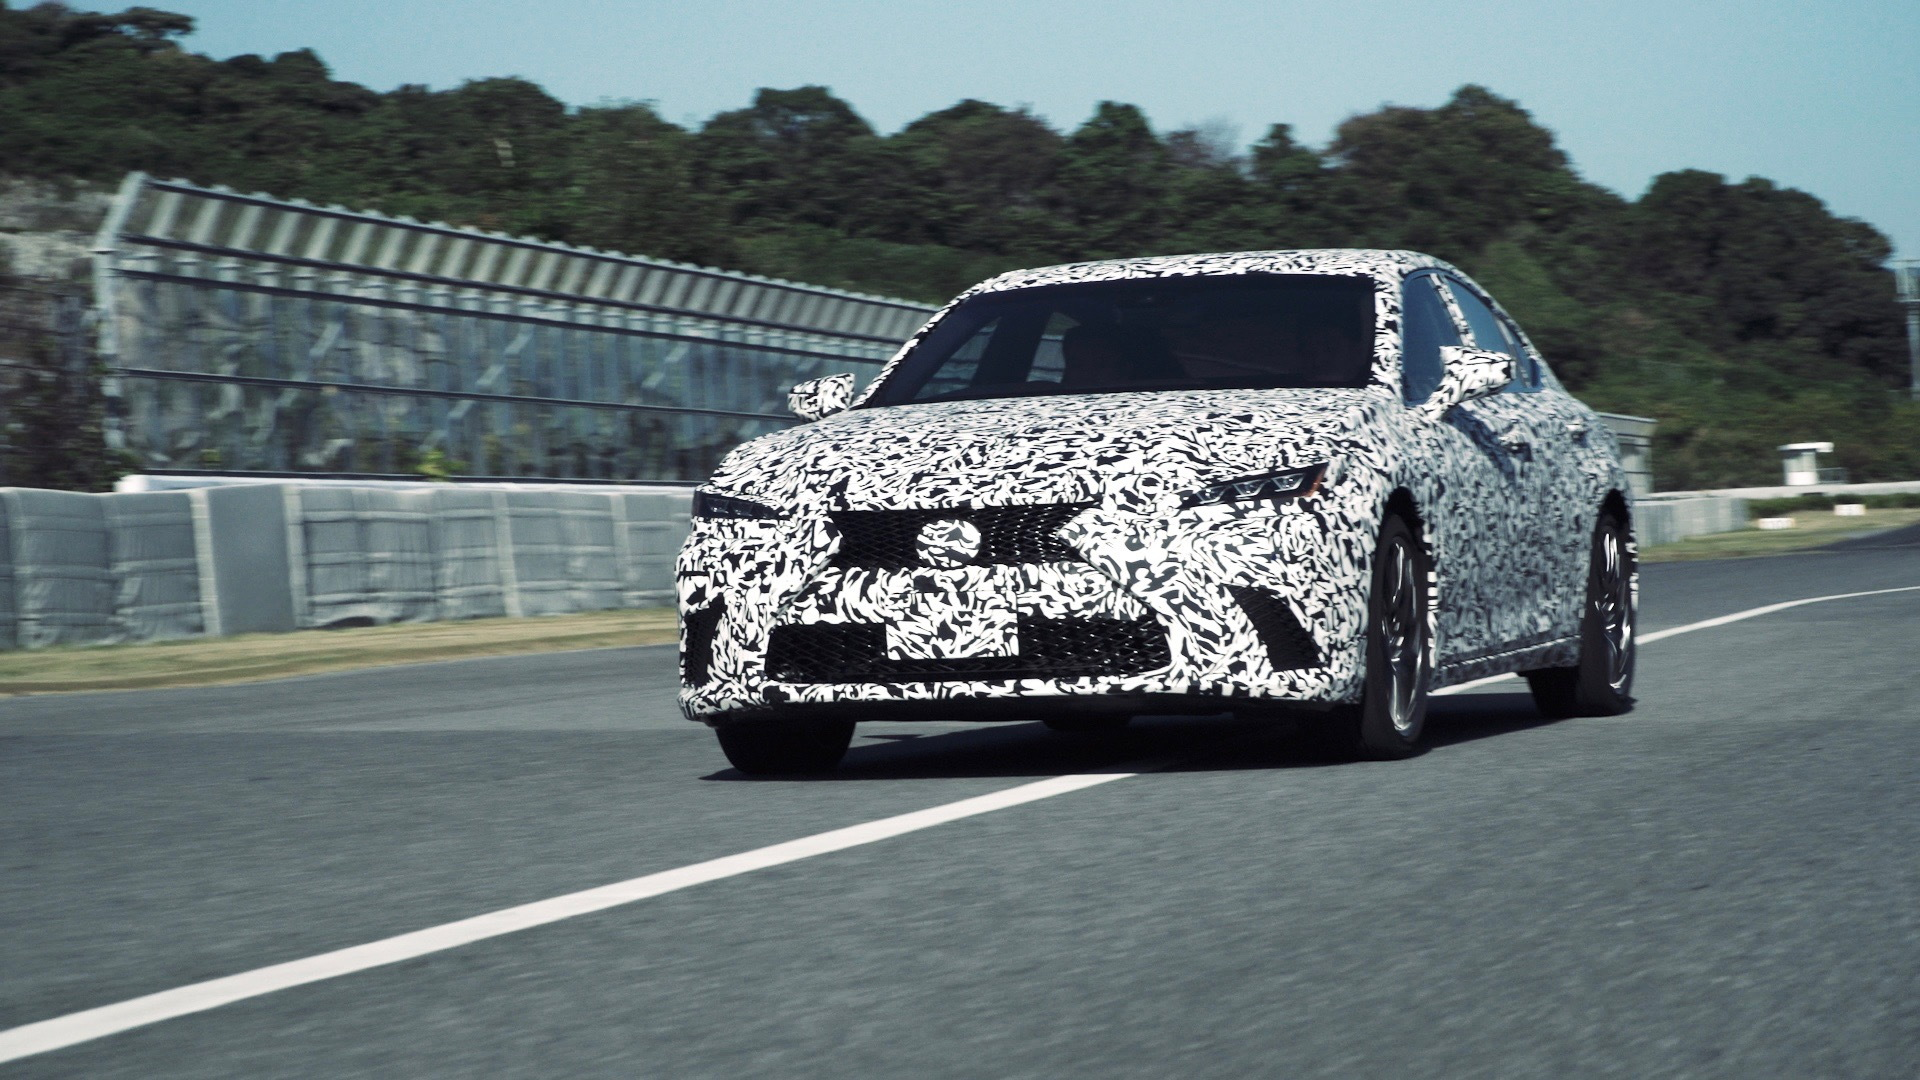 Lexus DIRECT4 all-wheel drive system development mule